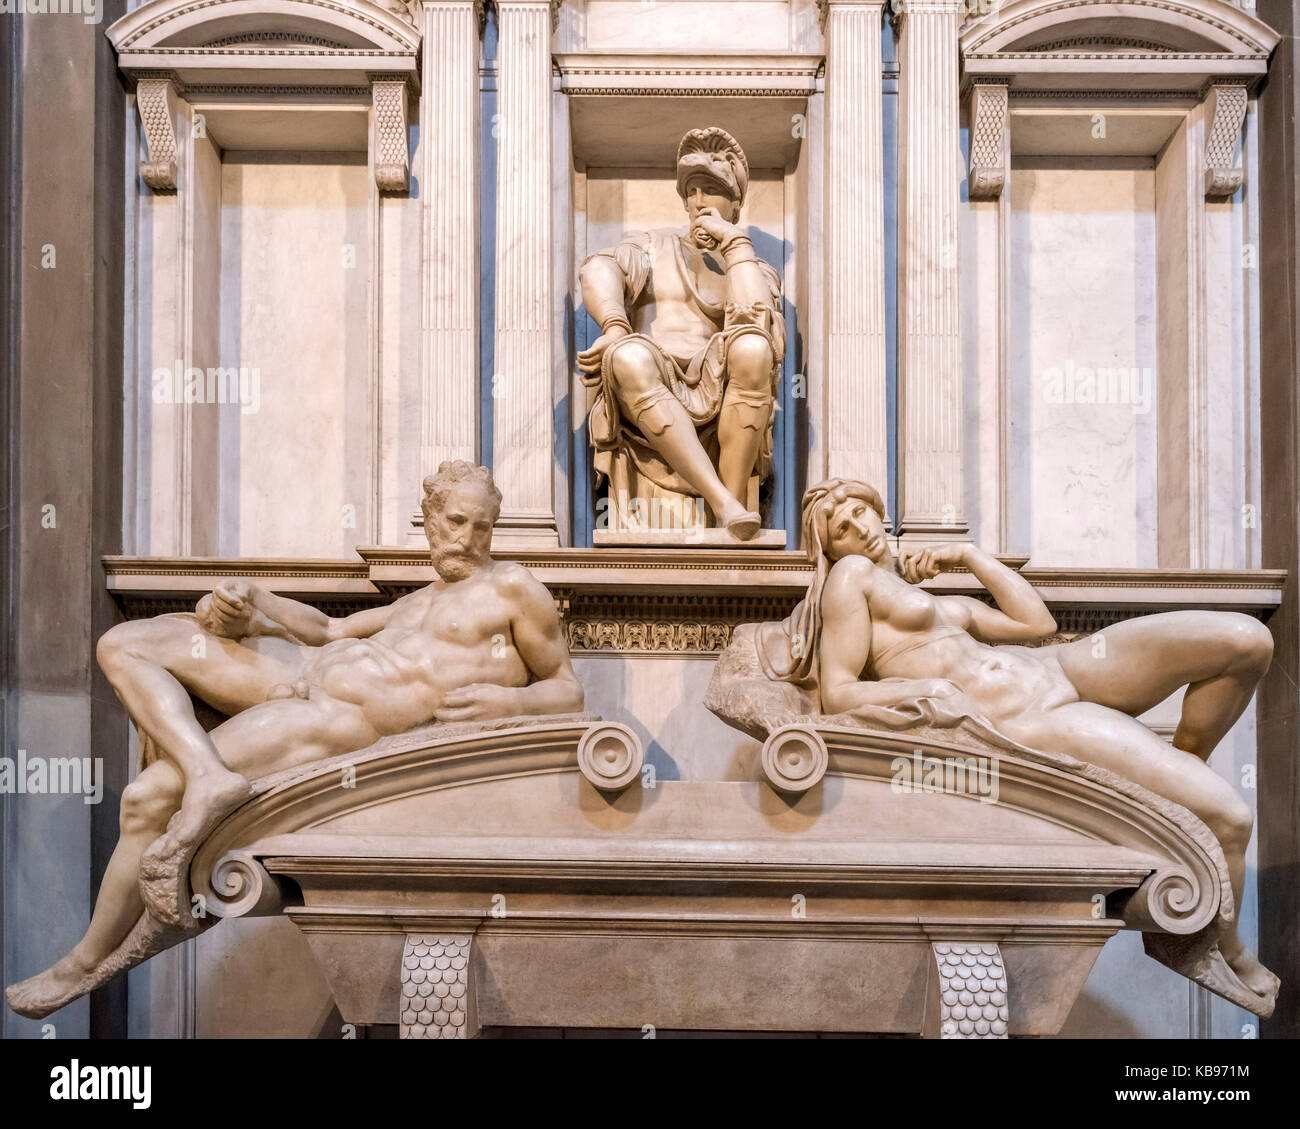 The tomb of Lorenzo, Duke of Urbino by Michelangelo, Cappelle Medicee, Church of San Lorenzo, Florence, Italy. - Stock Image